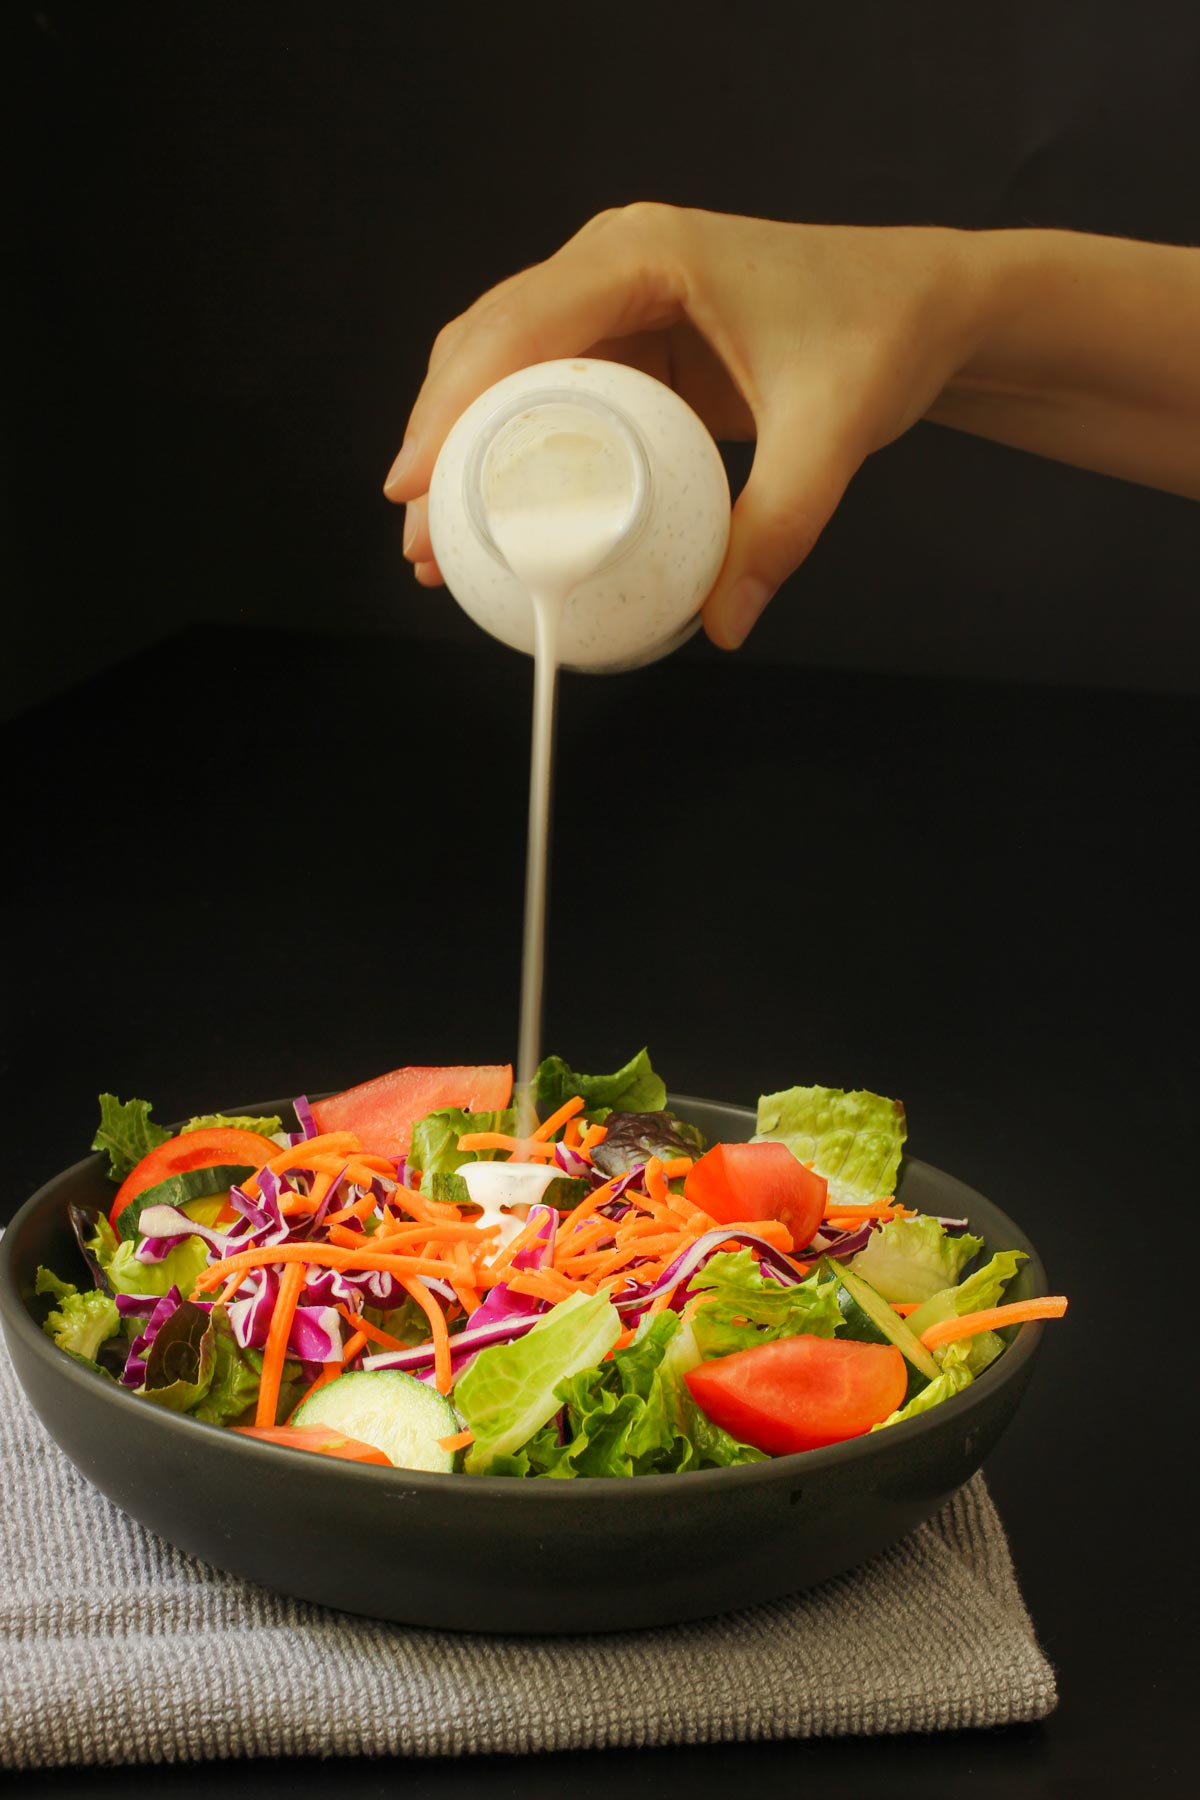 hand pouring buttermilk dressing onto green salad in black bowl.